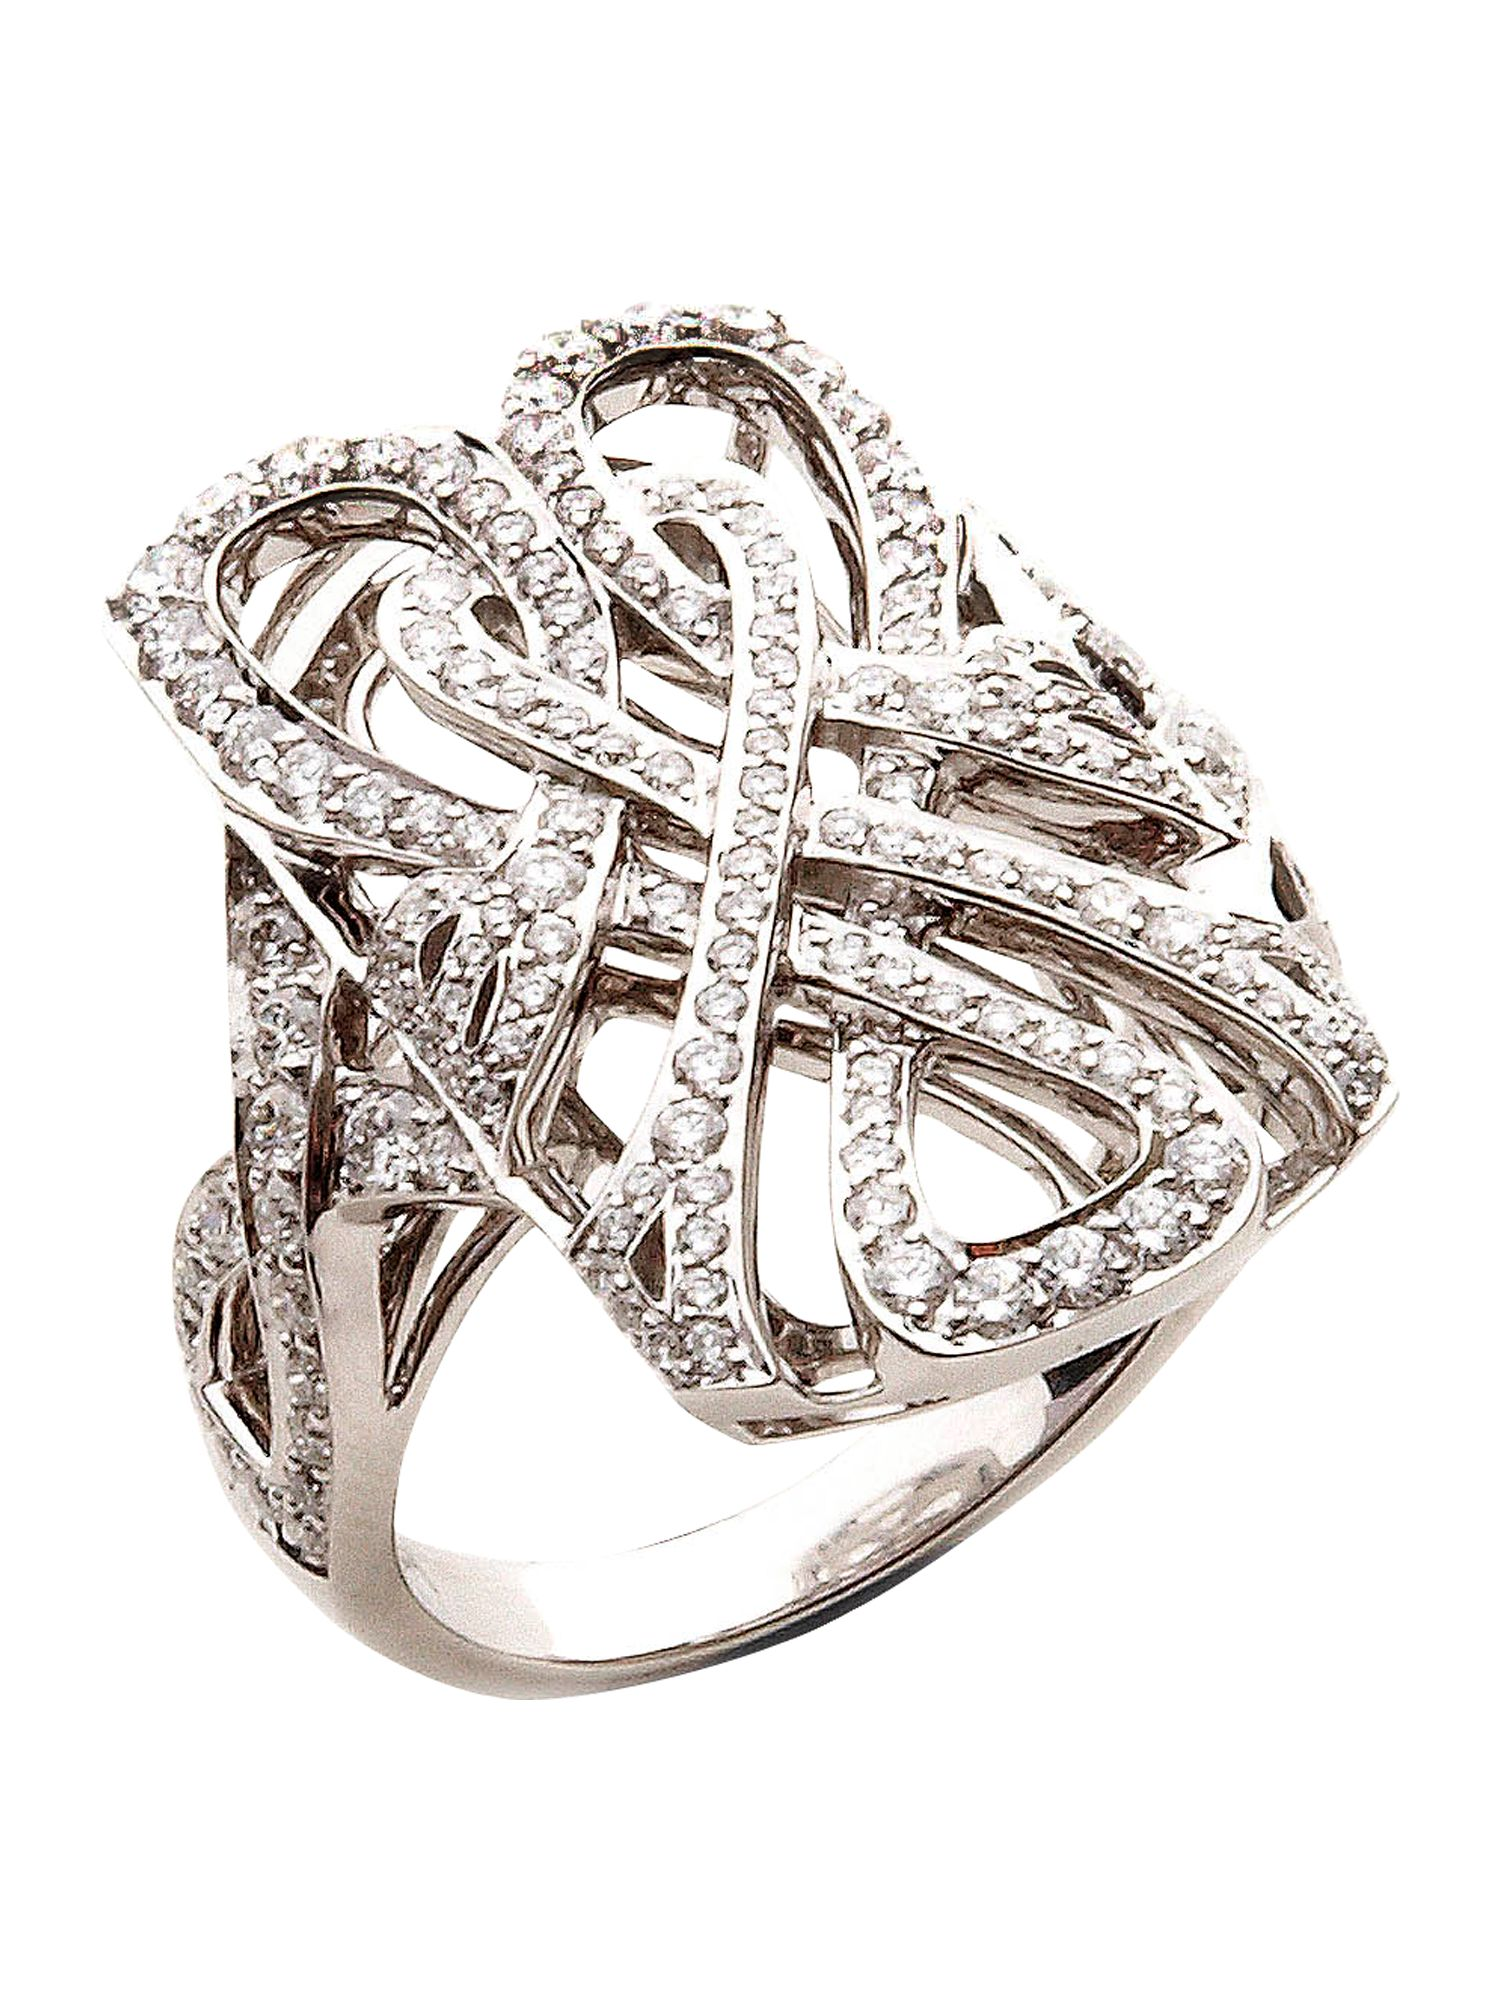 White gold and diamond logo filigree ring